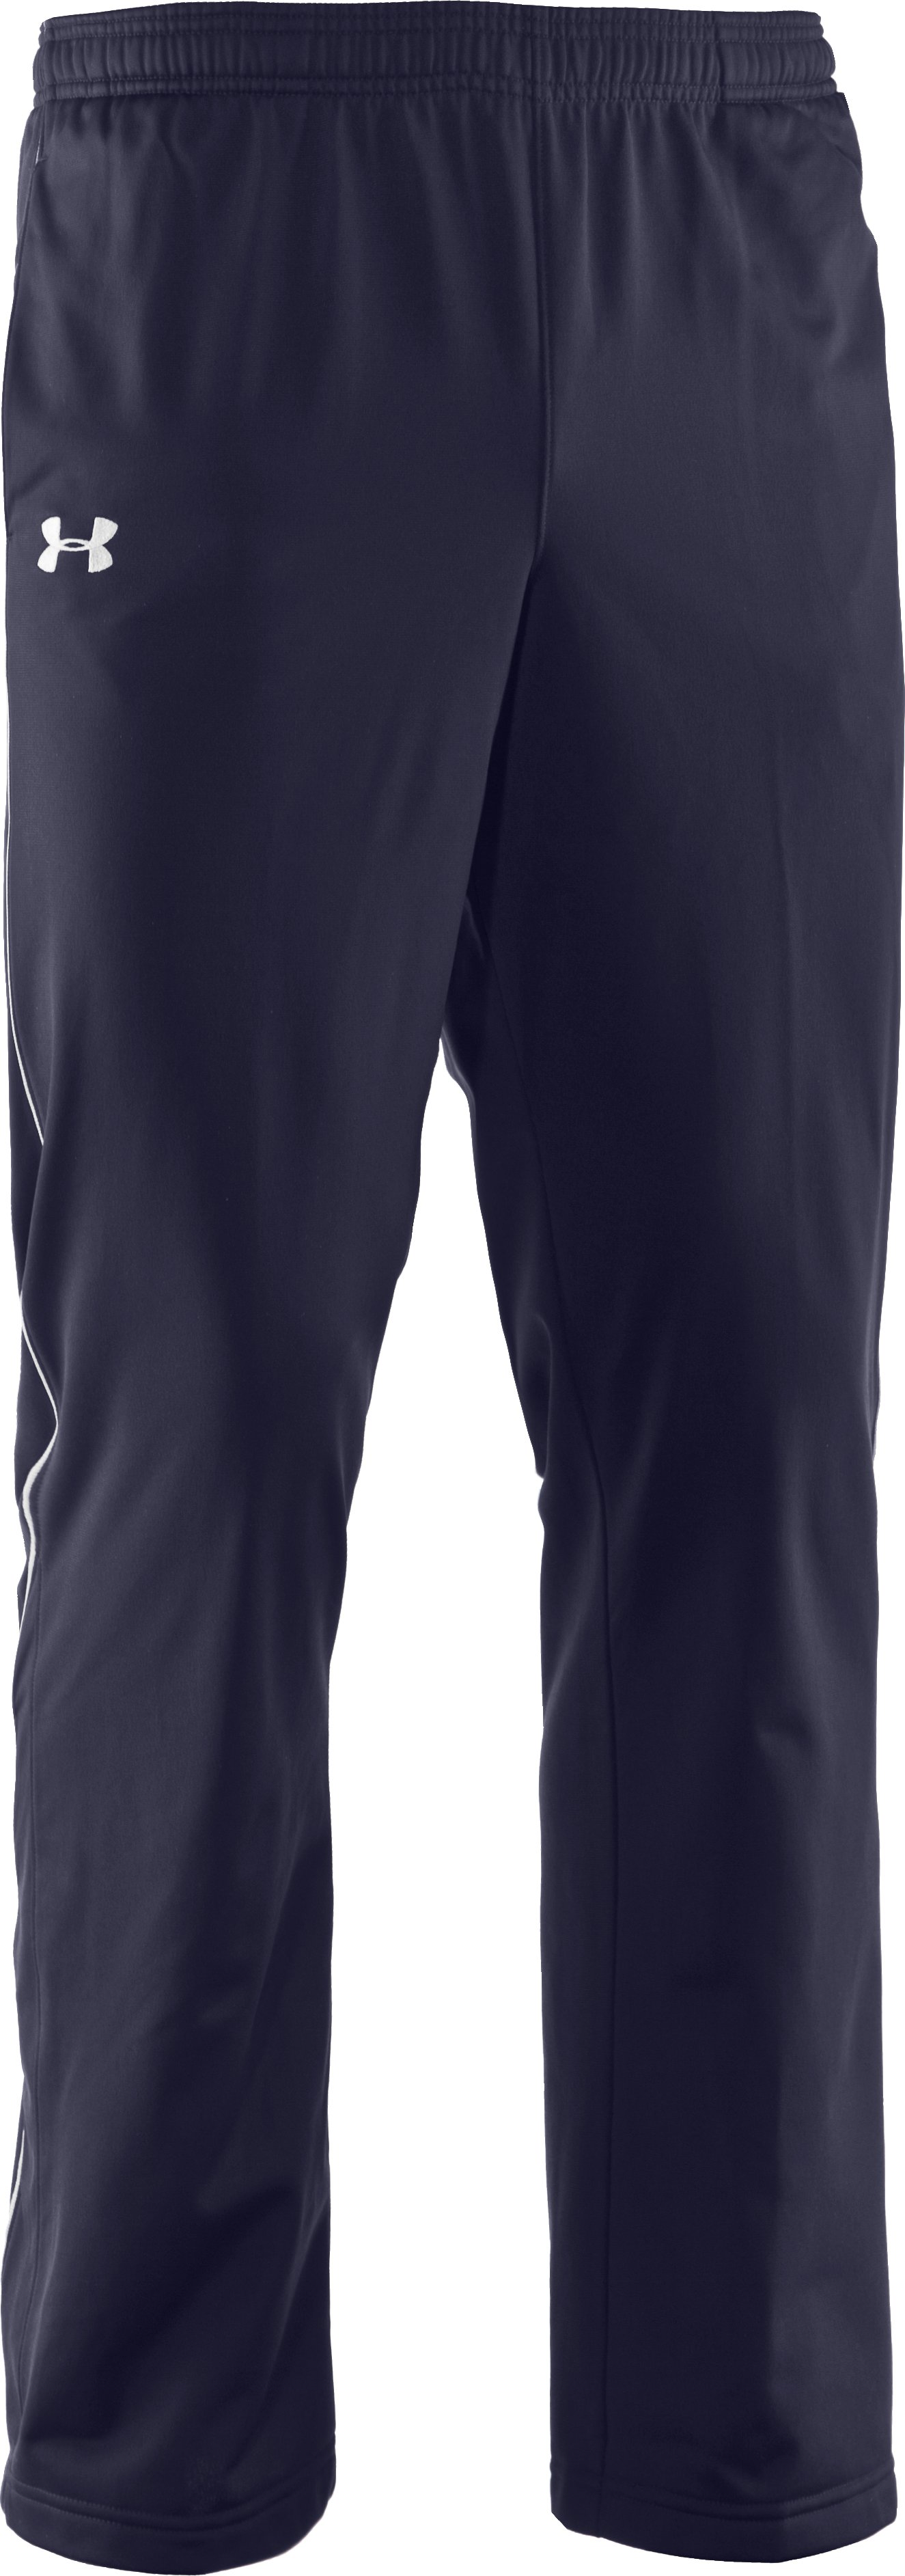 Men's UA Strength Track Pants, Midnight Navy, undefined